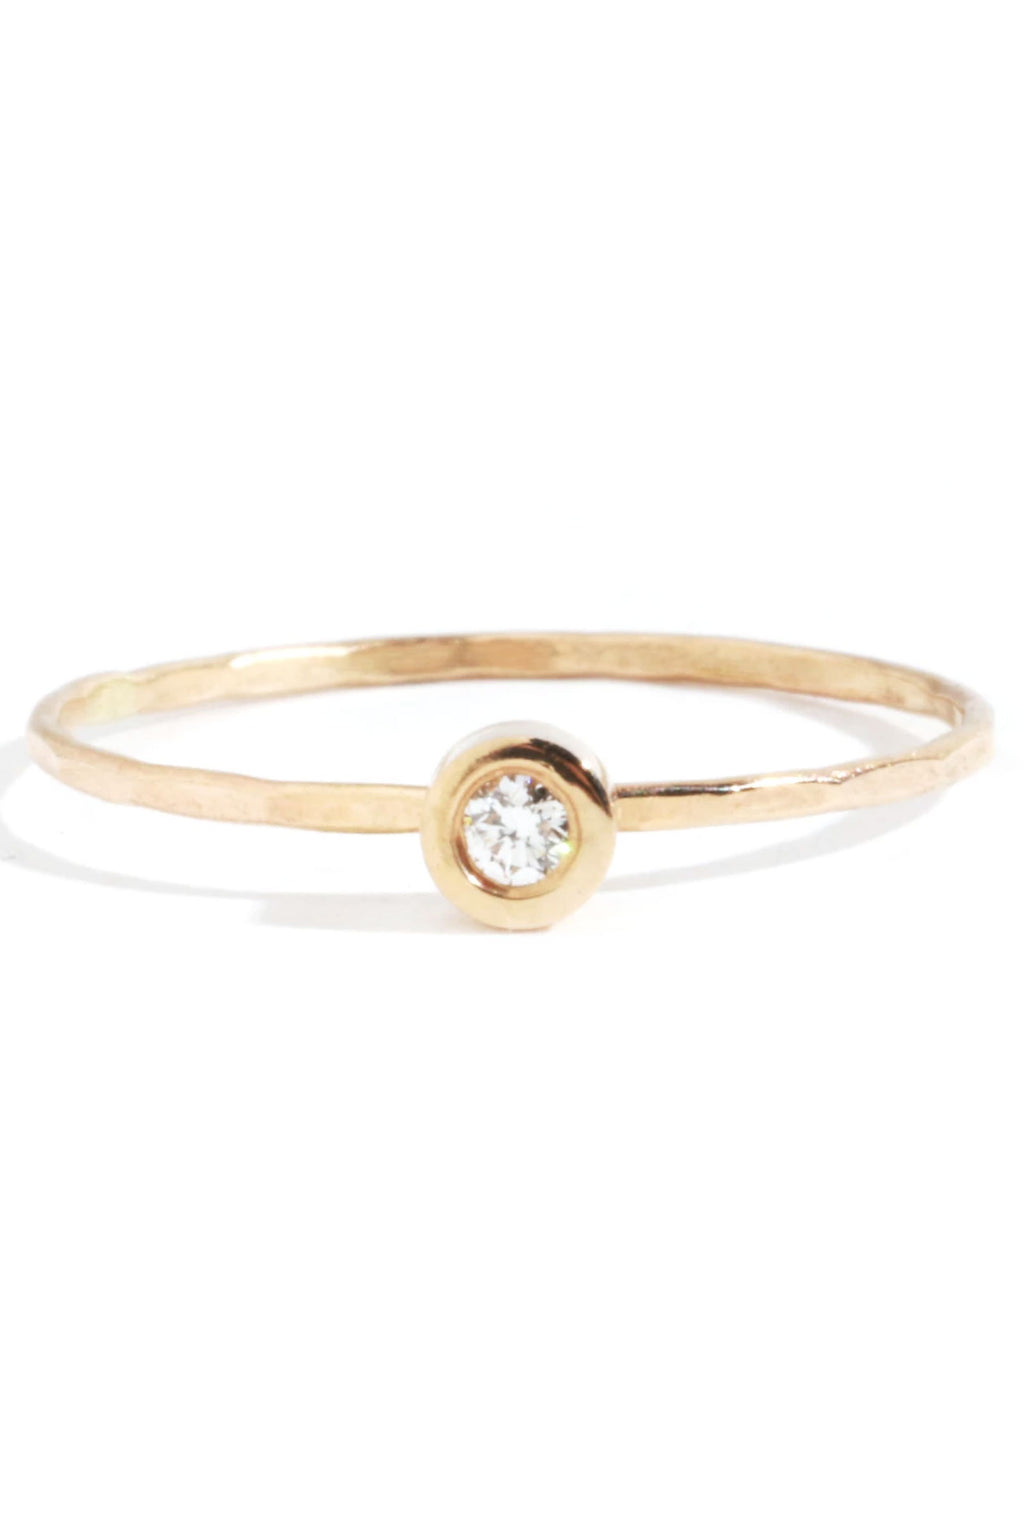 Melissa Joy Manning 14k Yellow Gold Flush Set White Diamond Ring